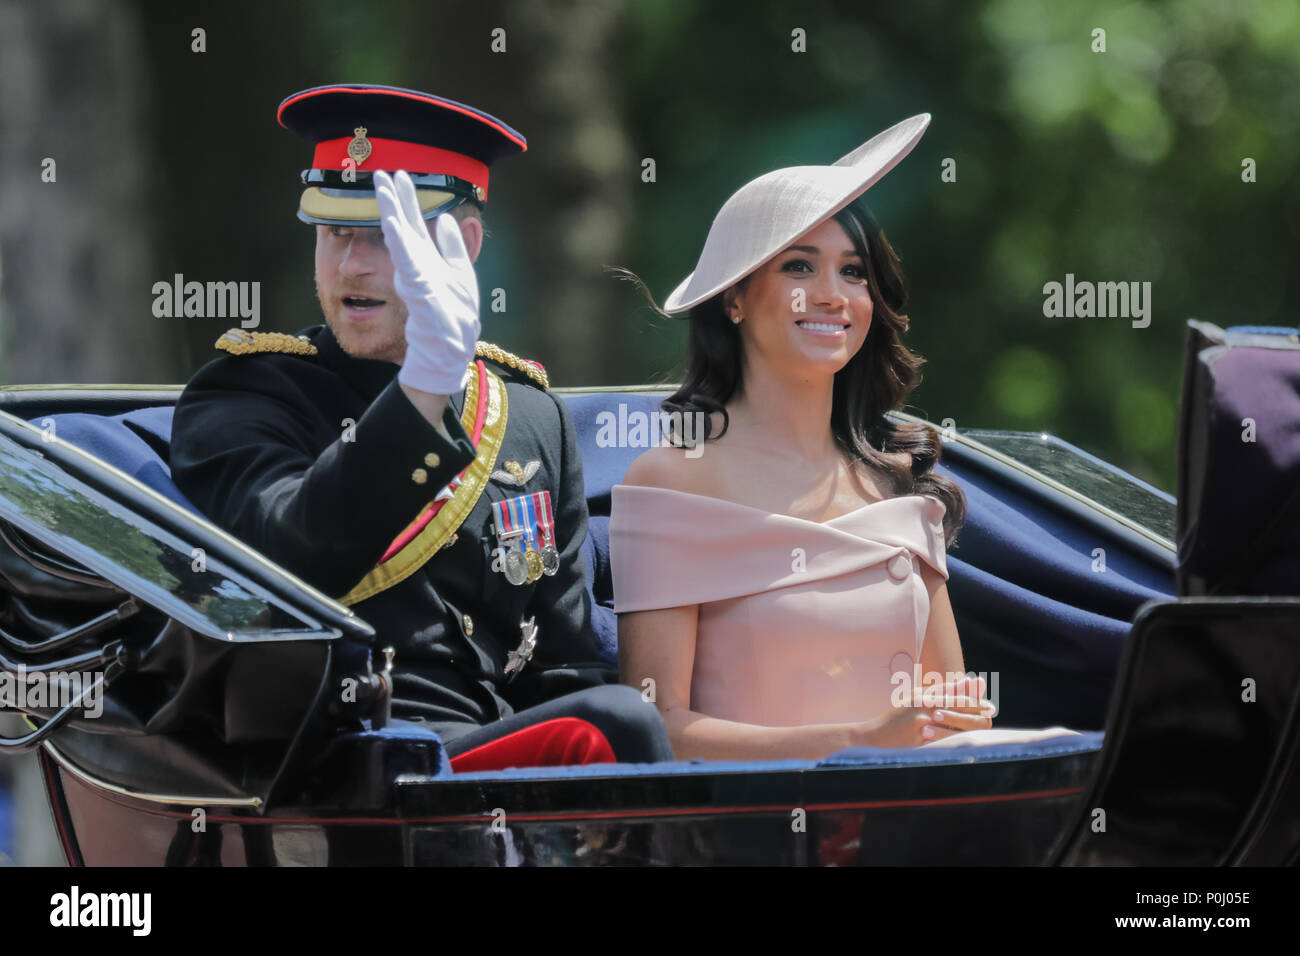 London, UK. 9th June 2018. HRH Prince Harry and his wife, Meghan, now titled the Duke and Duchdess of Sussex, ride in a horse drawn carriage in the procession along The Mall at Trooping the Colour, The Queens Birthday Parade. London.  This is Meghan, Duchess of Sussex first appearance at the procession. Credit: amanda rose/Alamy Live News Stock Photo